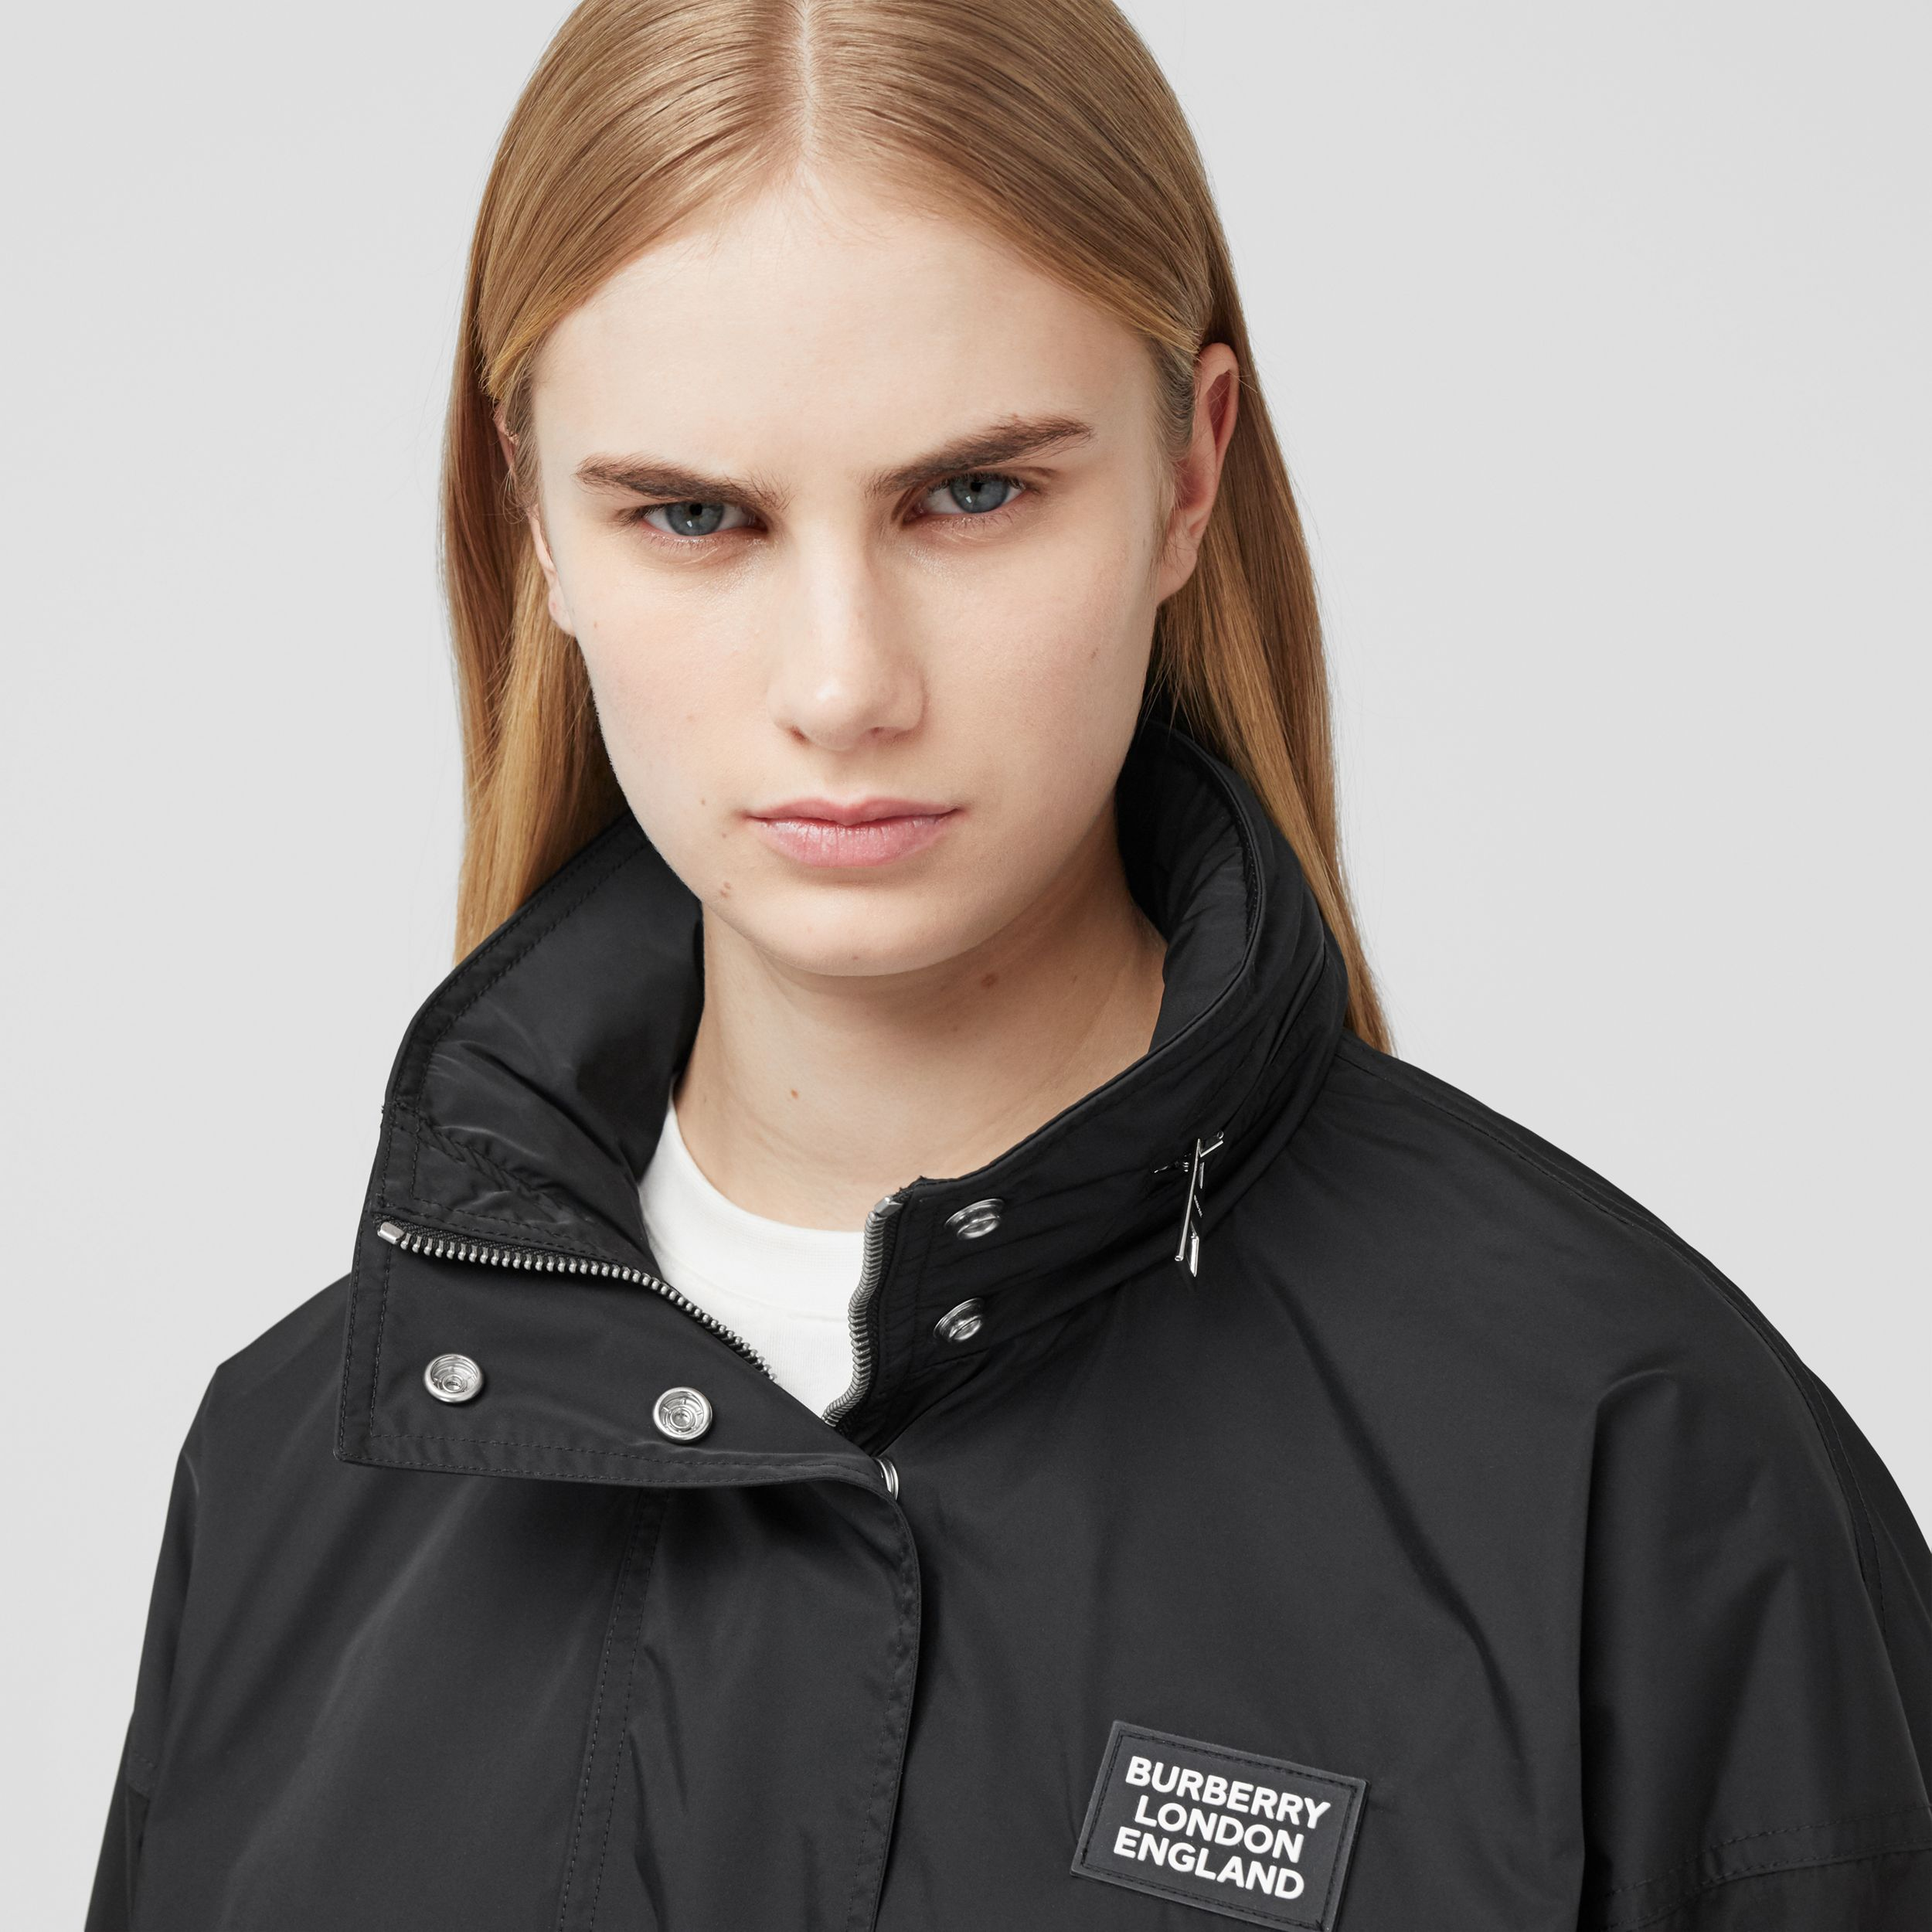 Packaway Hood Bio-based Nylon Jacket in Black - Women | Burberry United Kingdom - 2